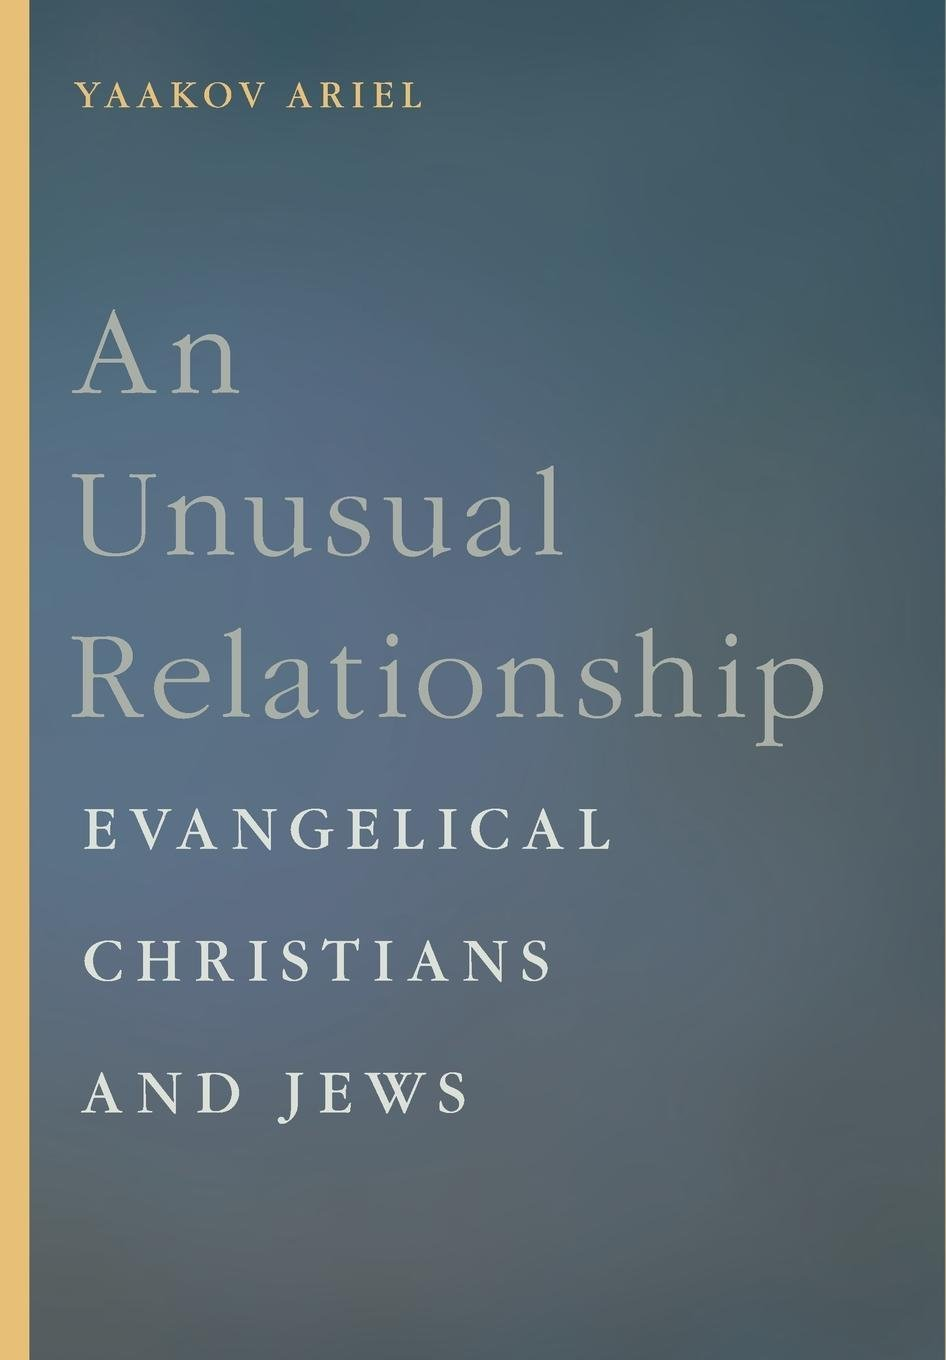 Download An Unusual Relationship: Evangelical Christians and Jews (Goldstein-Goren Series in American Jewish History) PDF